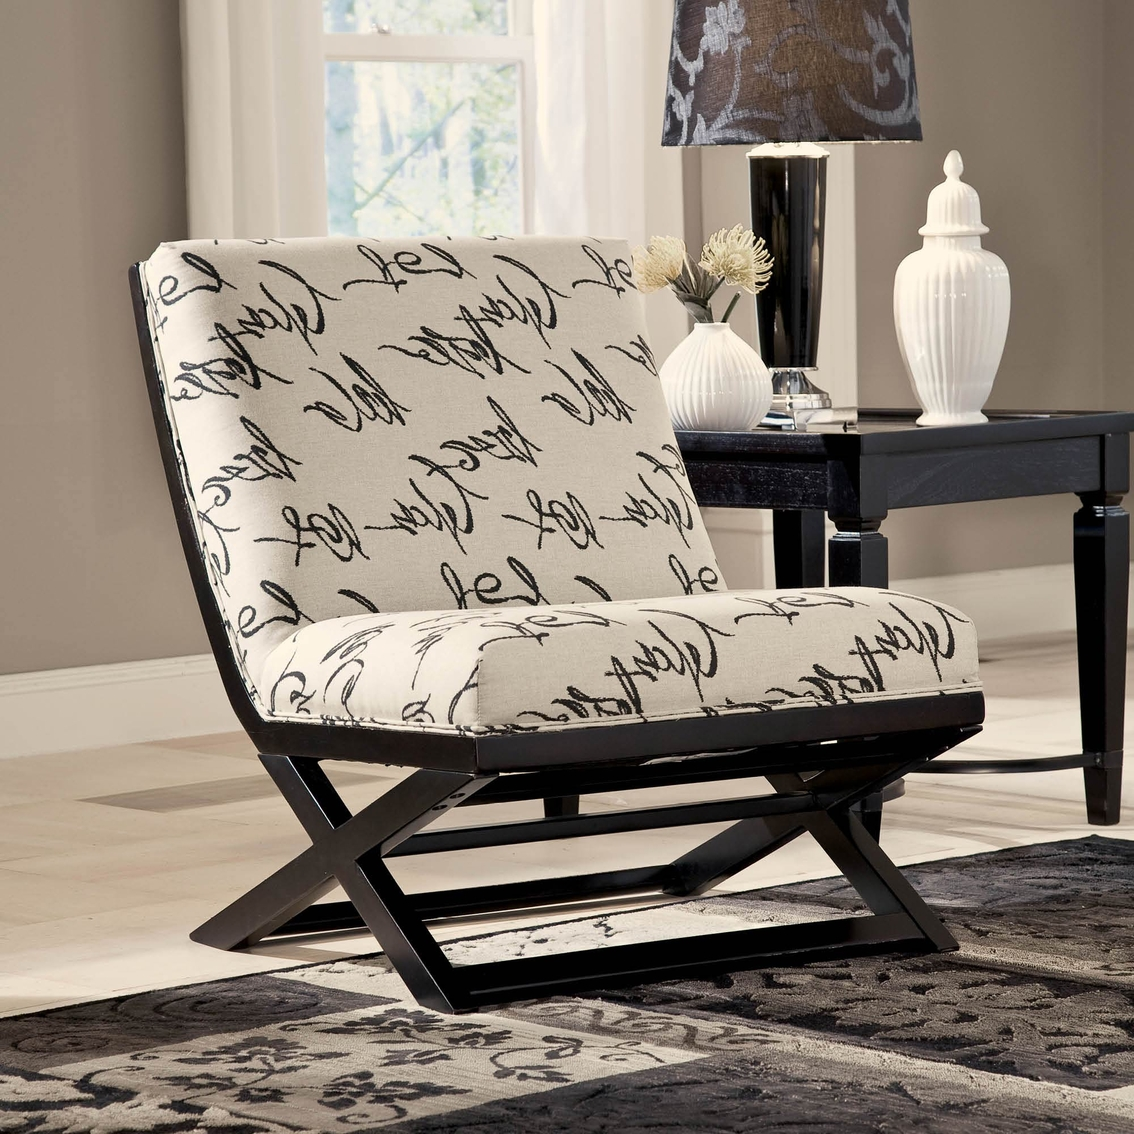 Excellent Signature Design By Ashley Levon Showood Accent Chair Download Free Architecture Designs Scobabritishbridgeorg